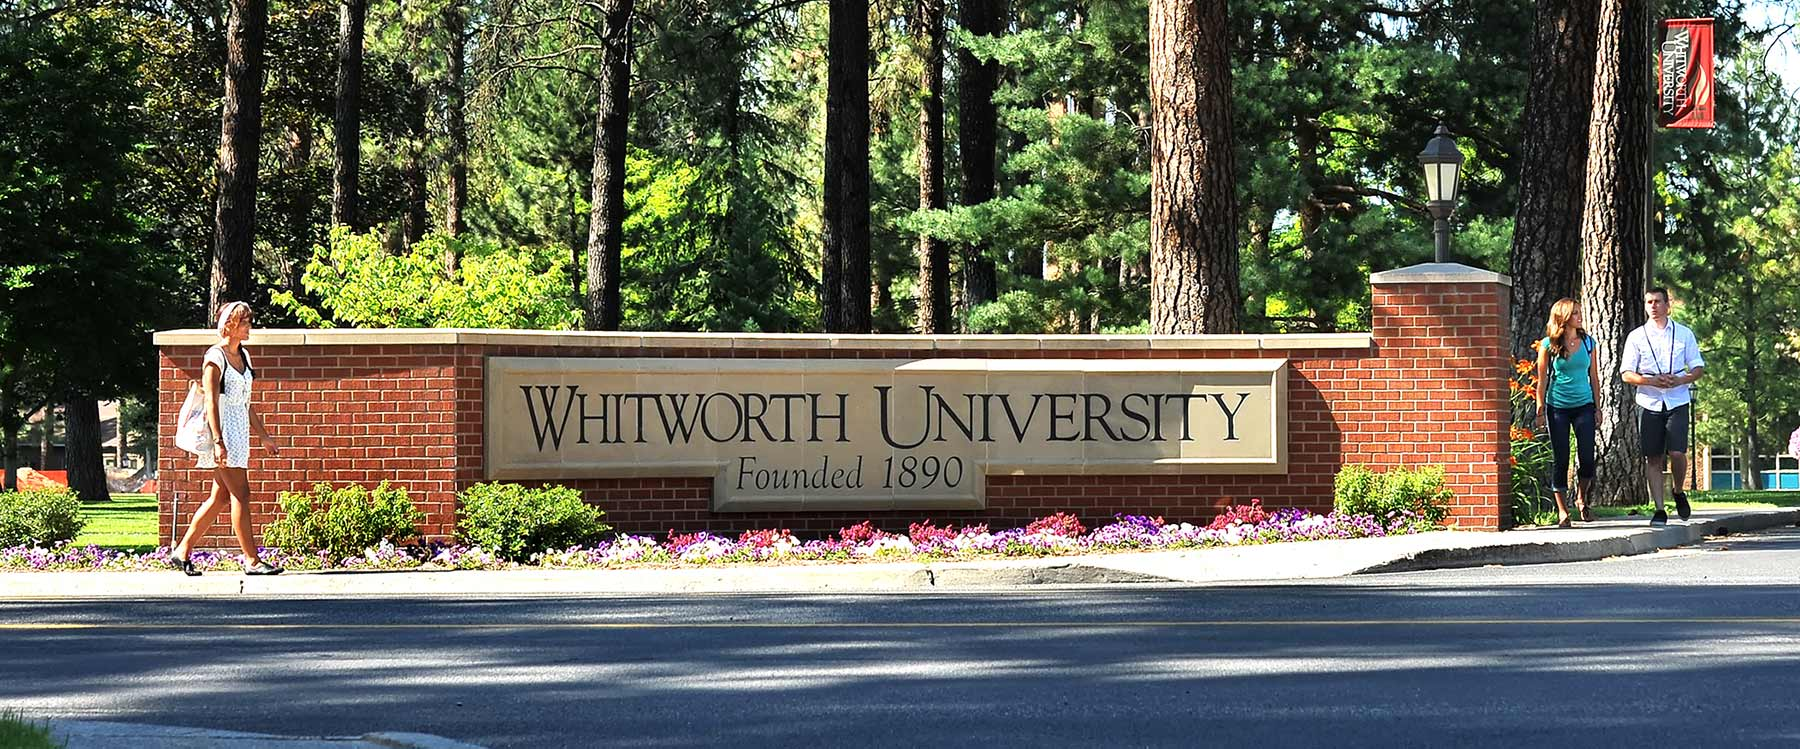 Students walk on the sidewalk on either side of the brick Whitworth entrance sign.